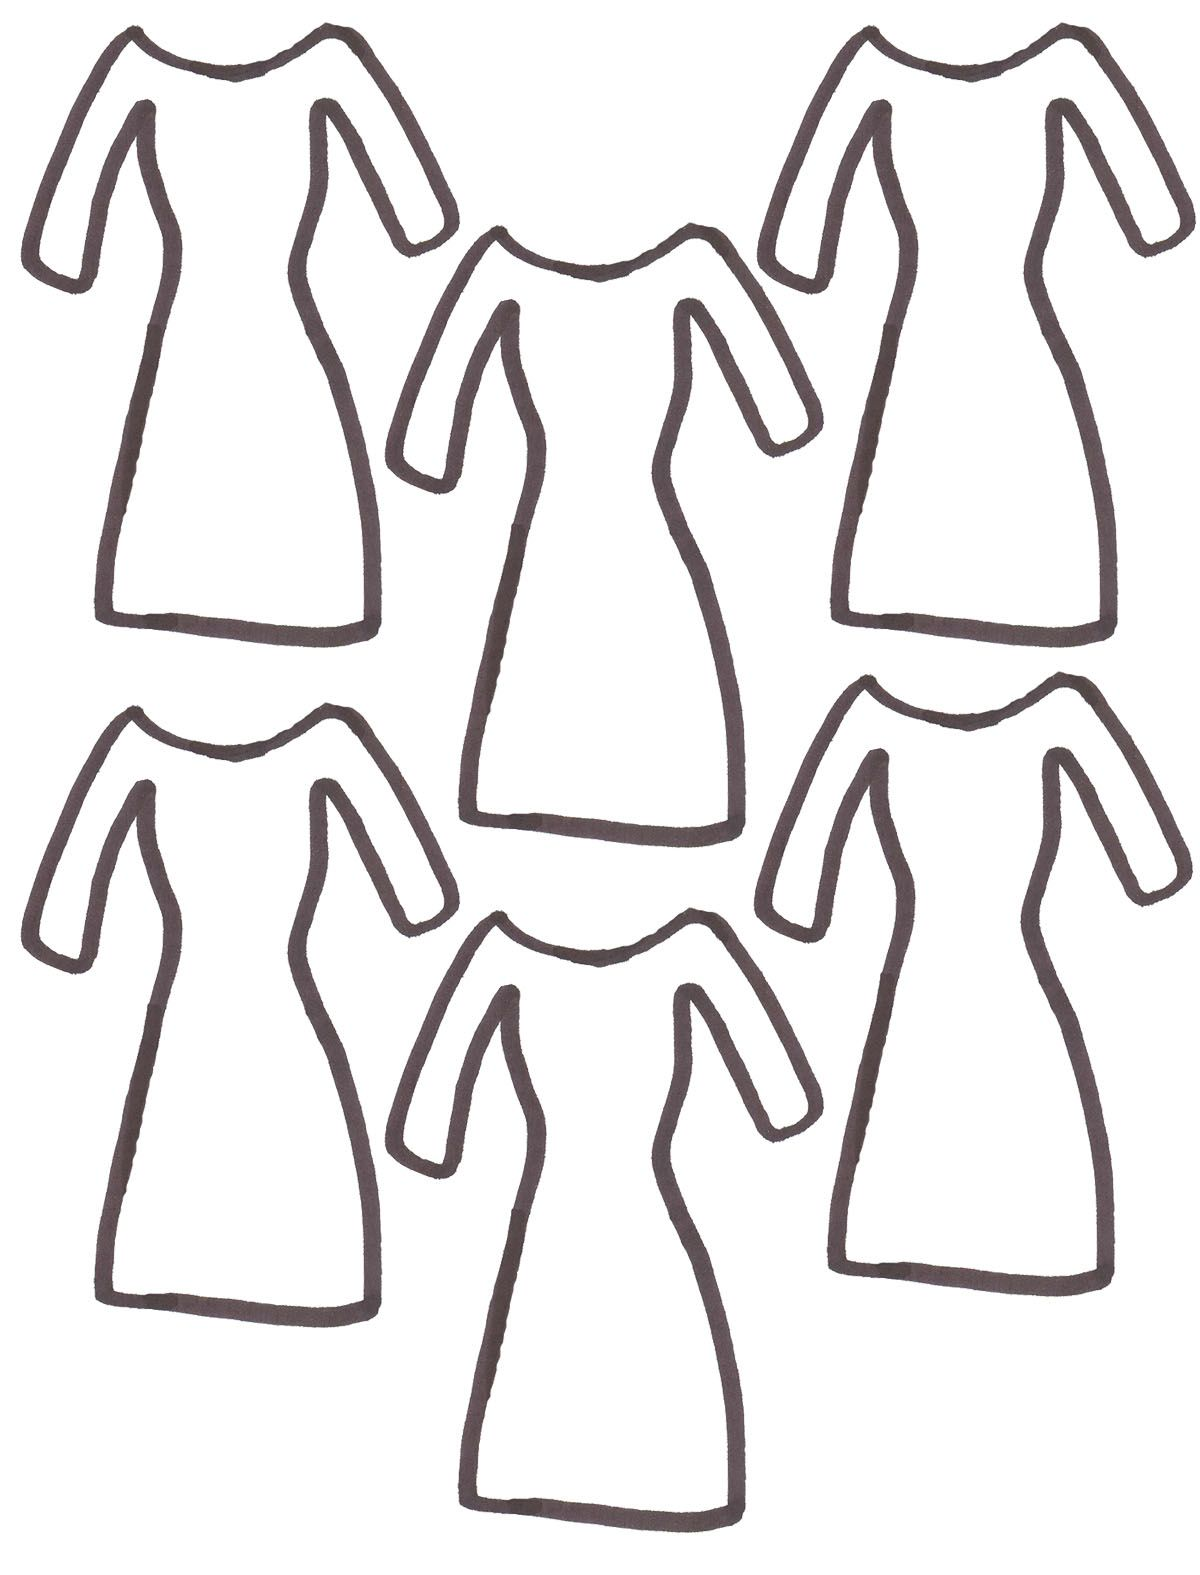 t shirt coloring pages – coursity.me | 1575x1200